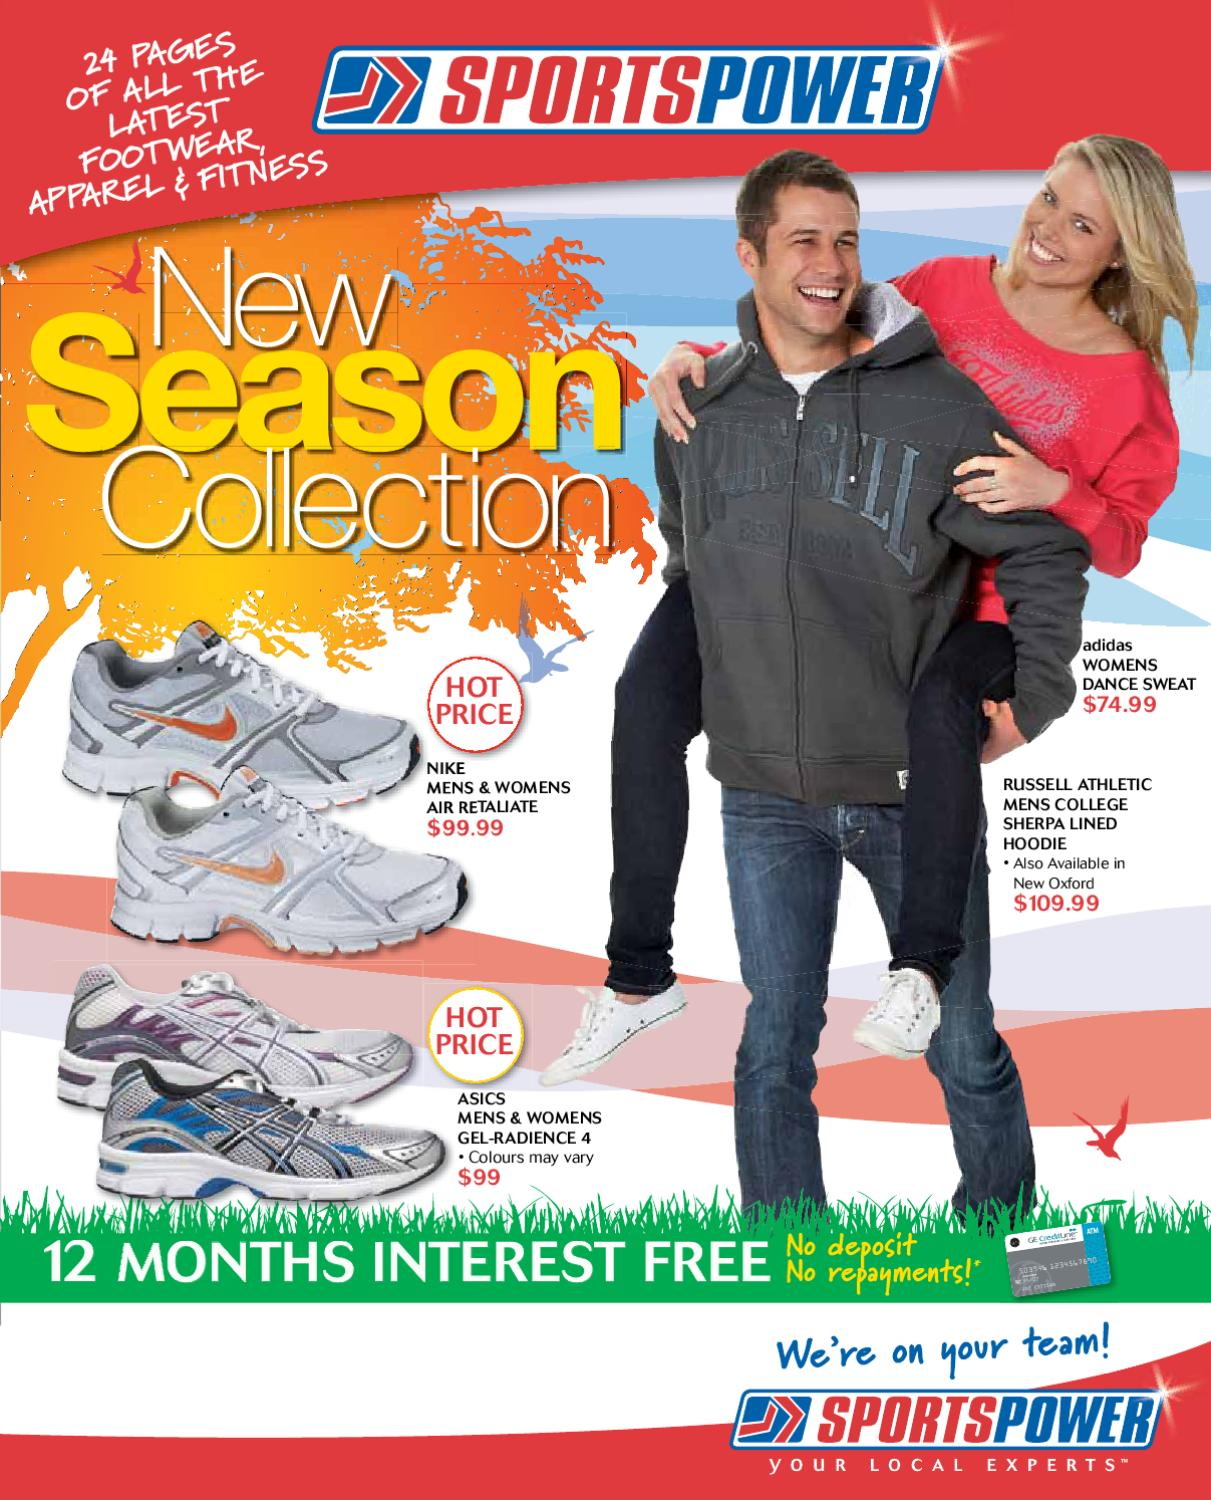 SportsPower New Season Collection by Associated Retailers